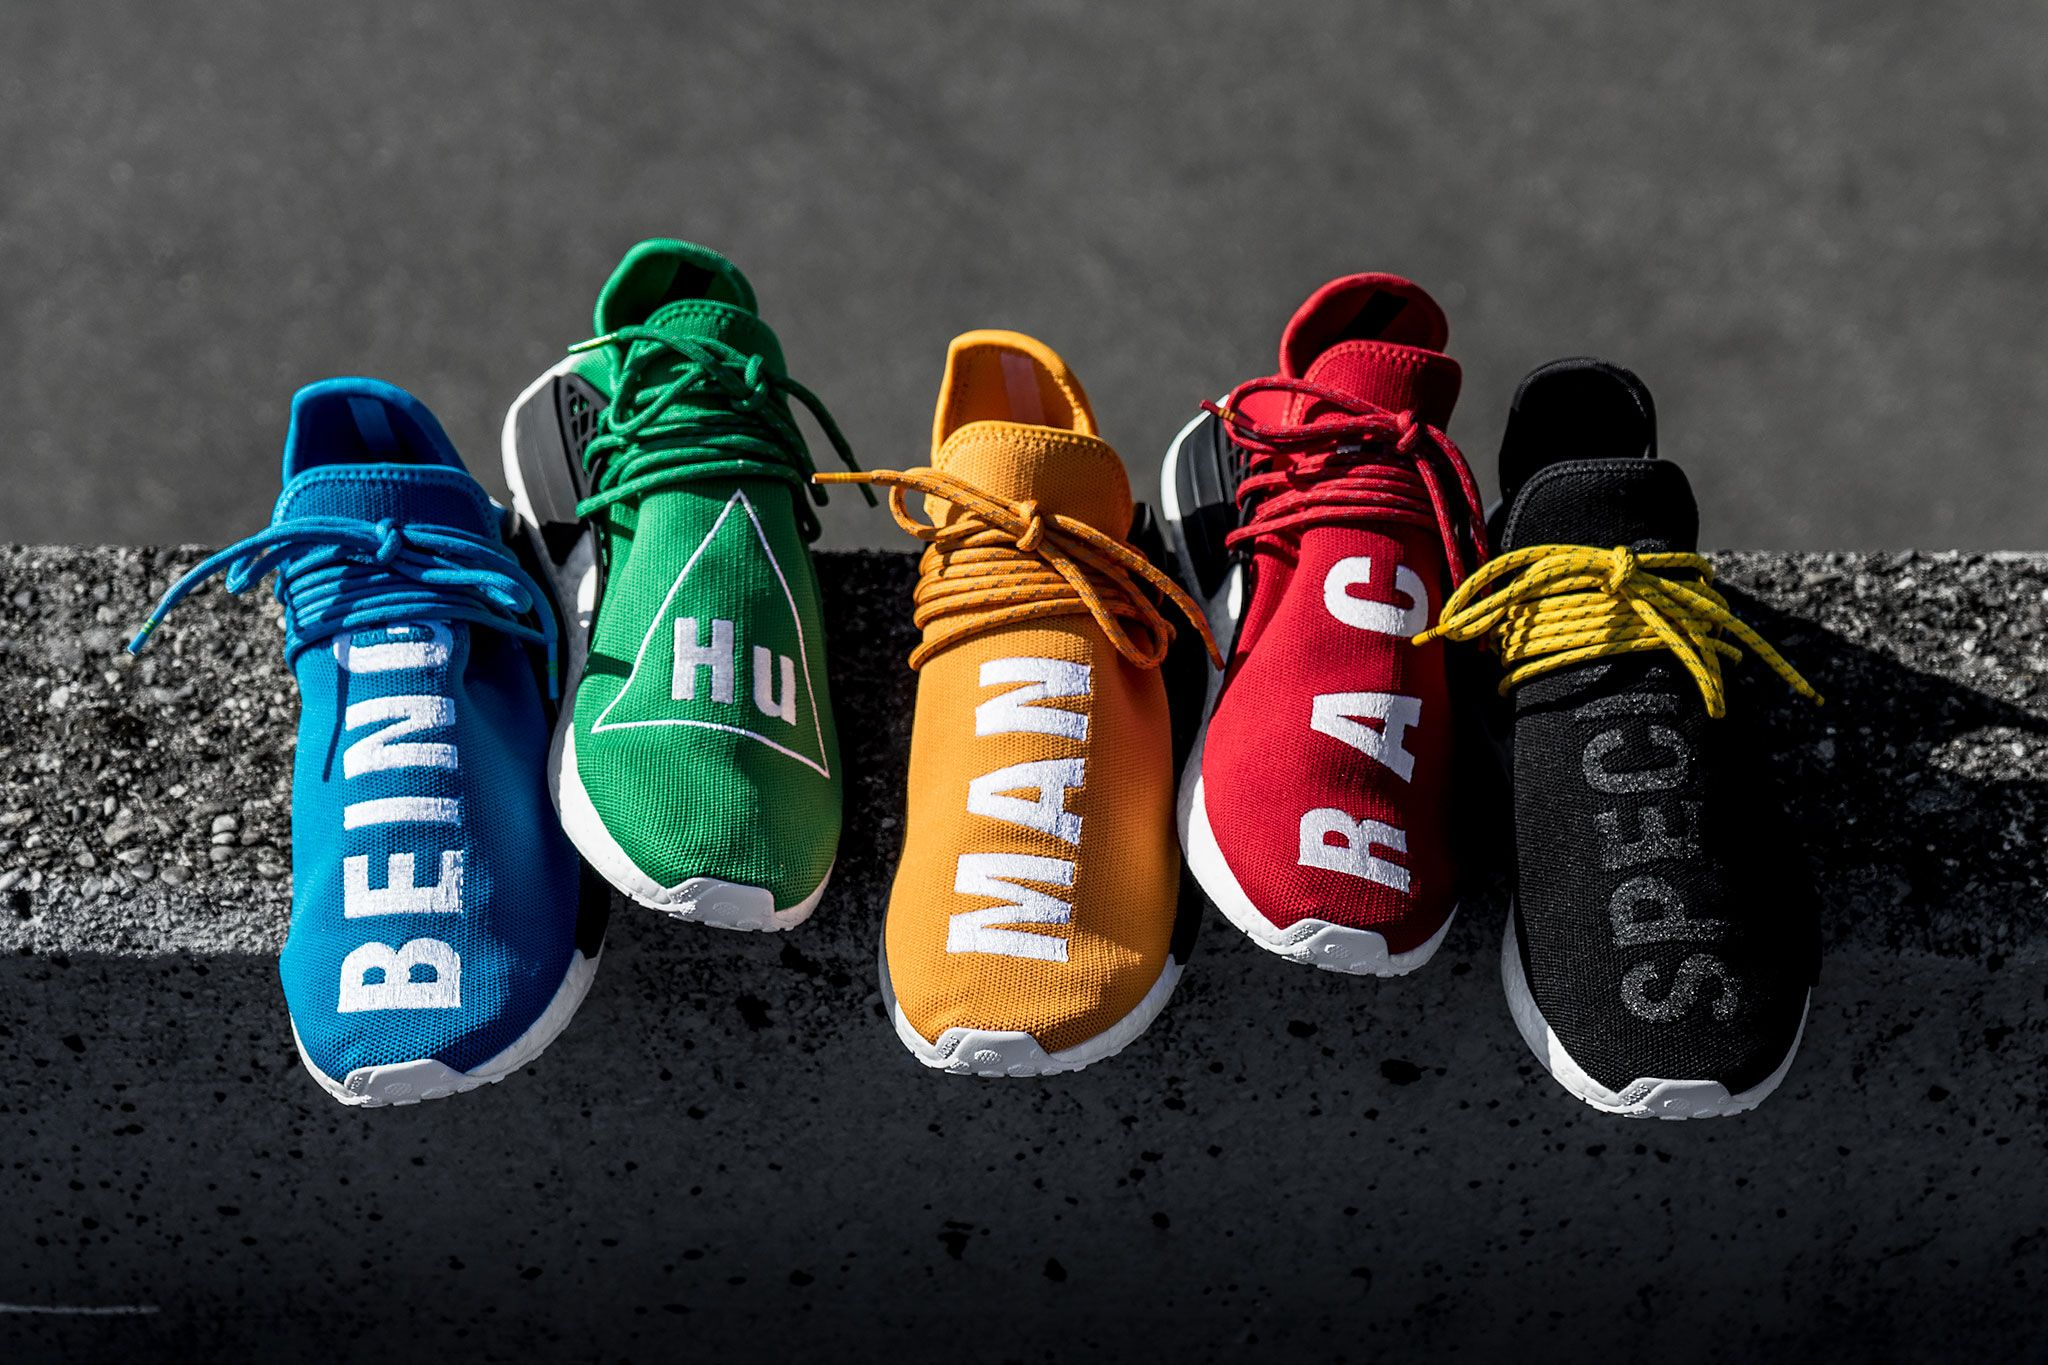 adidas Originals x Pharrell Williams NMD \u201cHu\u201d Collection